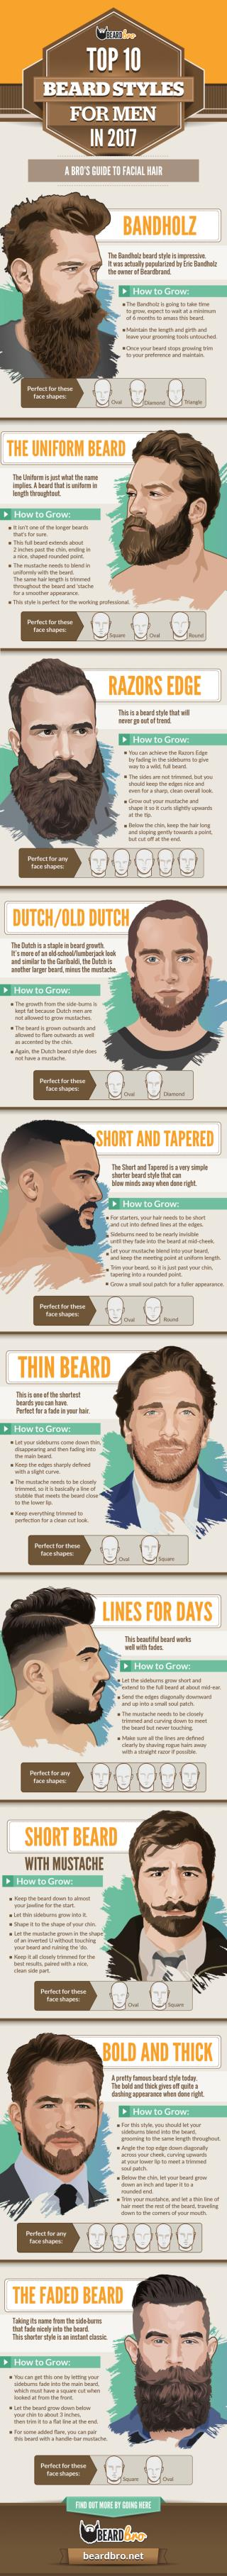 Top 10 Beard Styles for Men in 2017